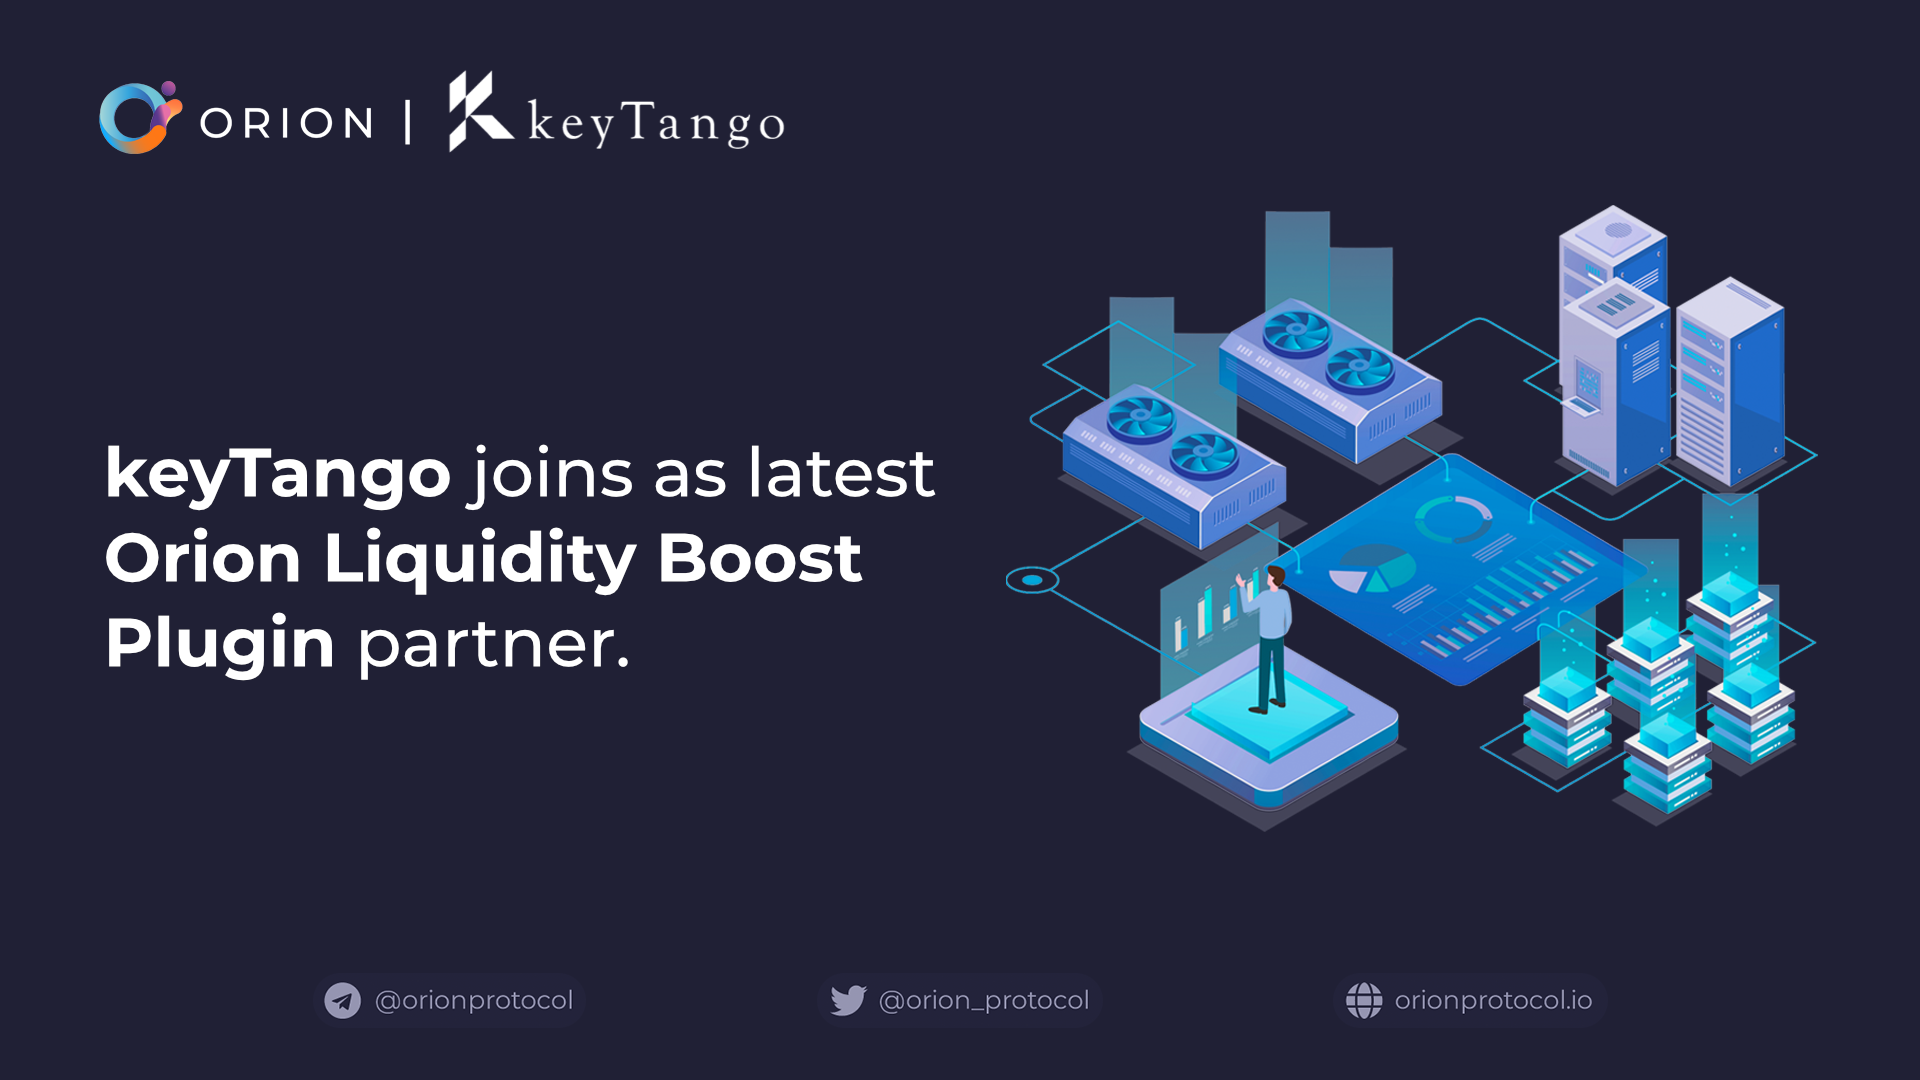 KeyTango joins as Liquidity Boost Plugin partner